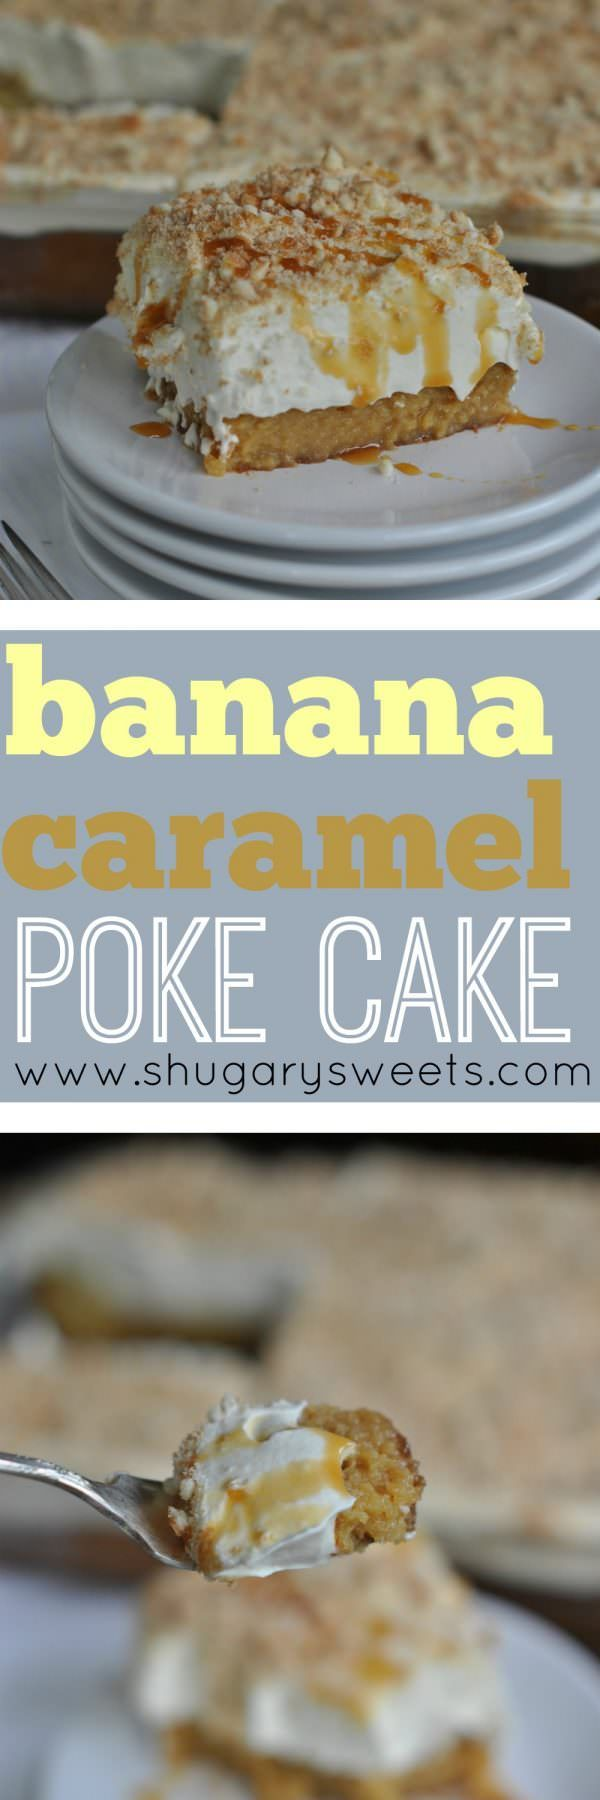 This Banana Caramel Poke Cake has a VERY moist cake layer topped with Banana JELL-O Pudding flavored Cool Whip. Caramel in the cake AND drizzled on top with some Nilla Wafers completes this luscious dessert.